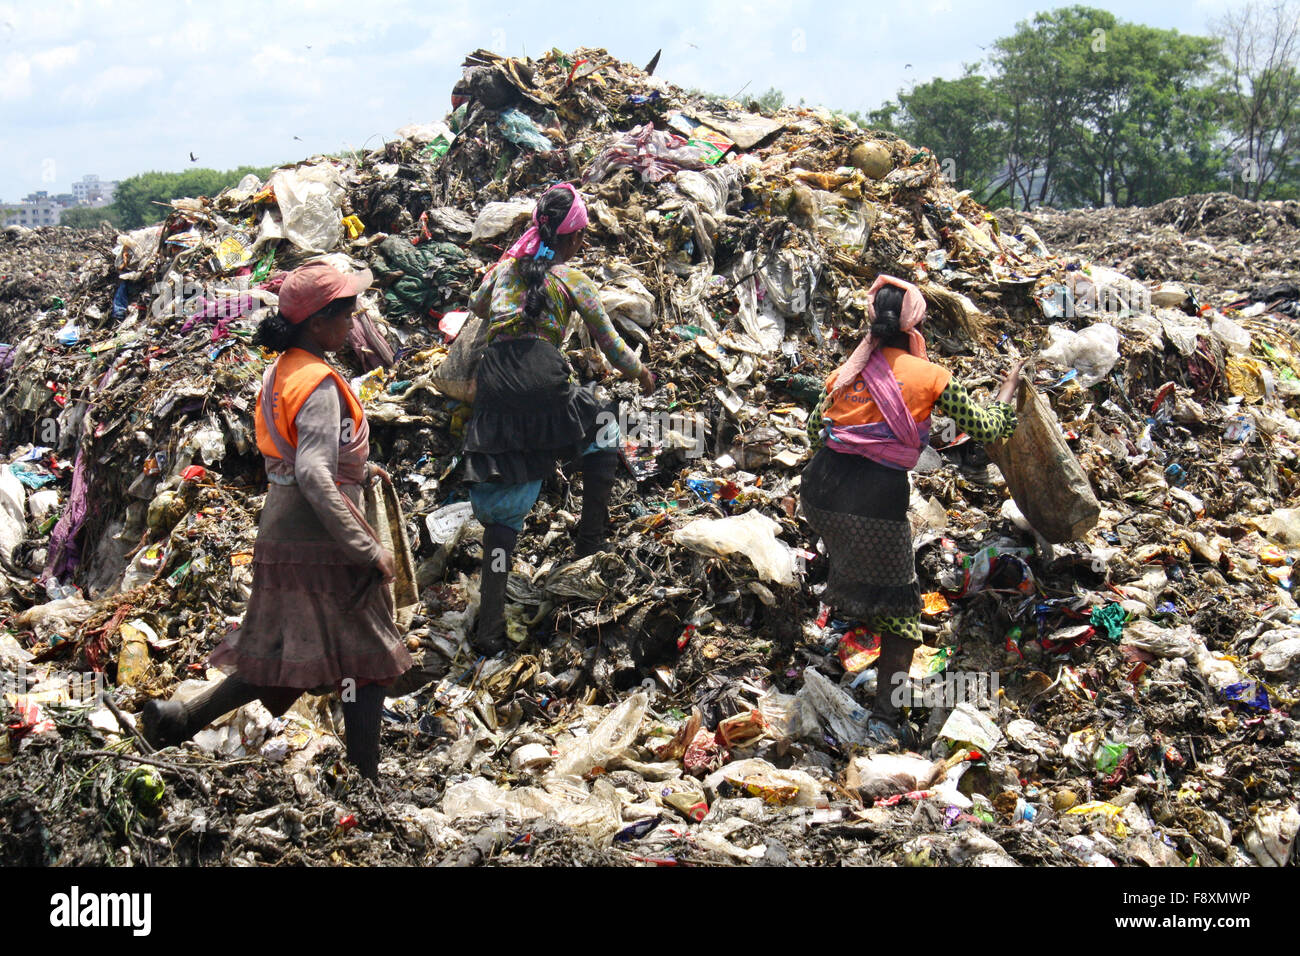 recycling of non biodegradable waste Professional quality non-biodegradable images and pictures at very affordable prices non-biodegradable waste in water save environment concept image non-biodegradable waste in water save environment concept foto unclogging septic system.